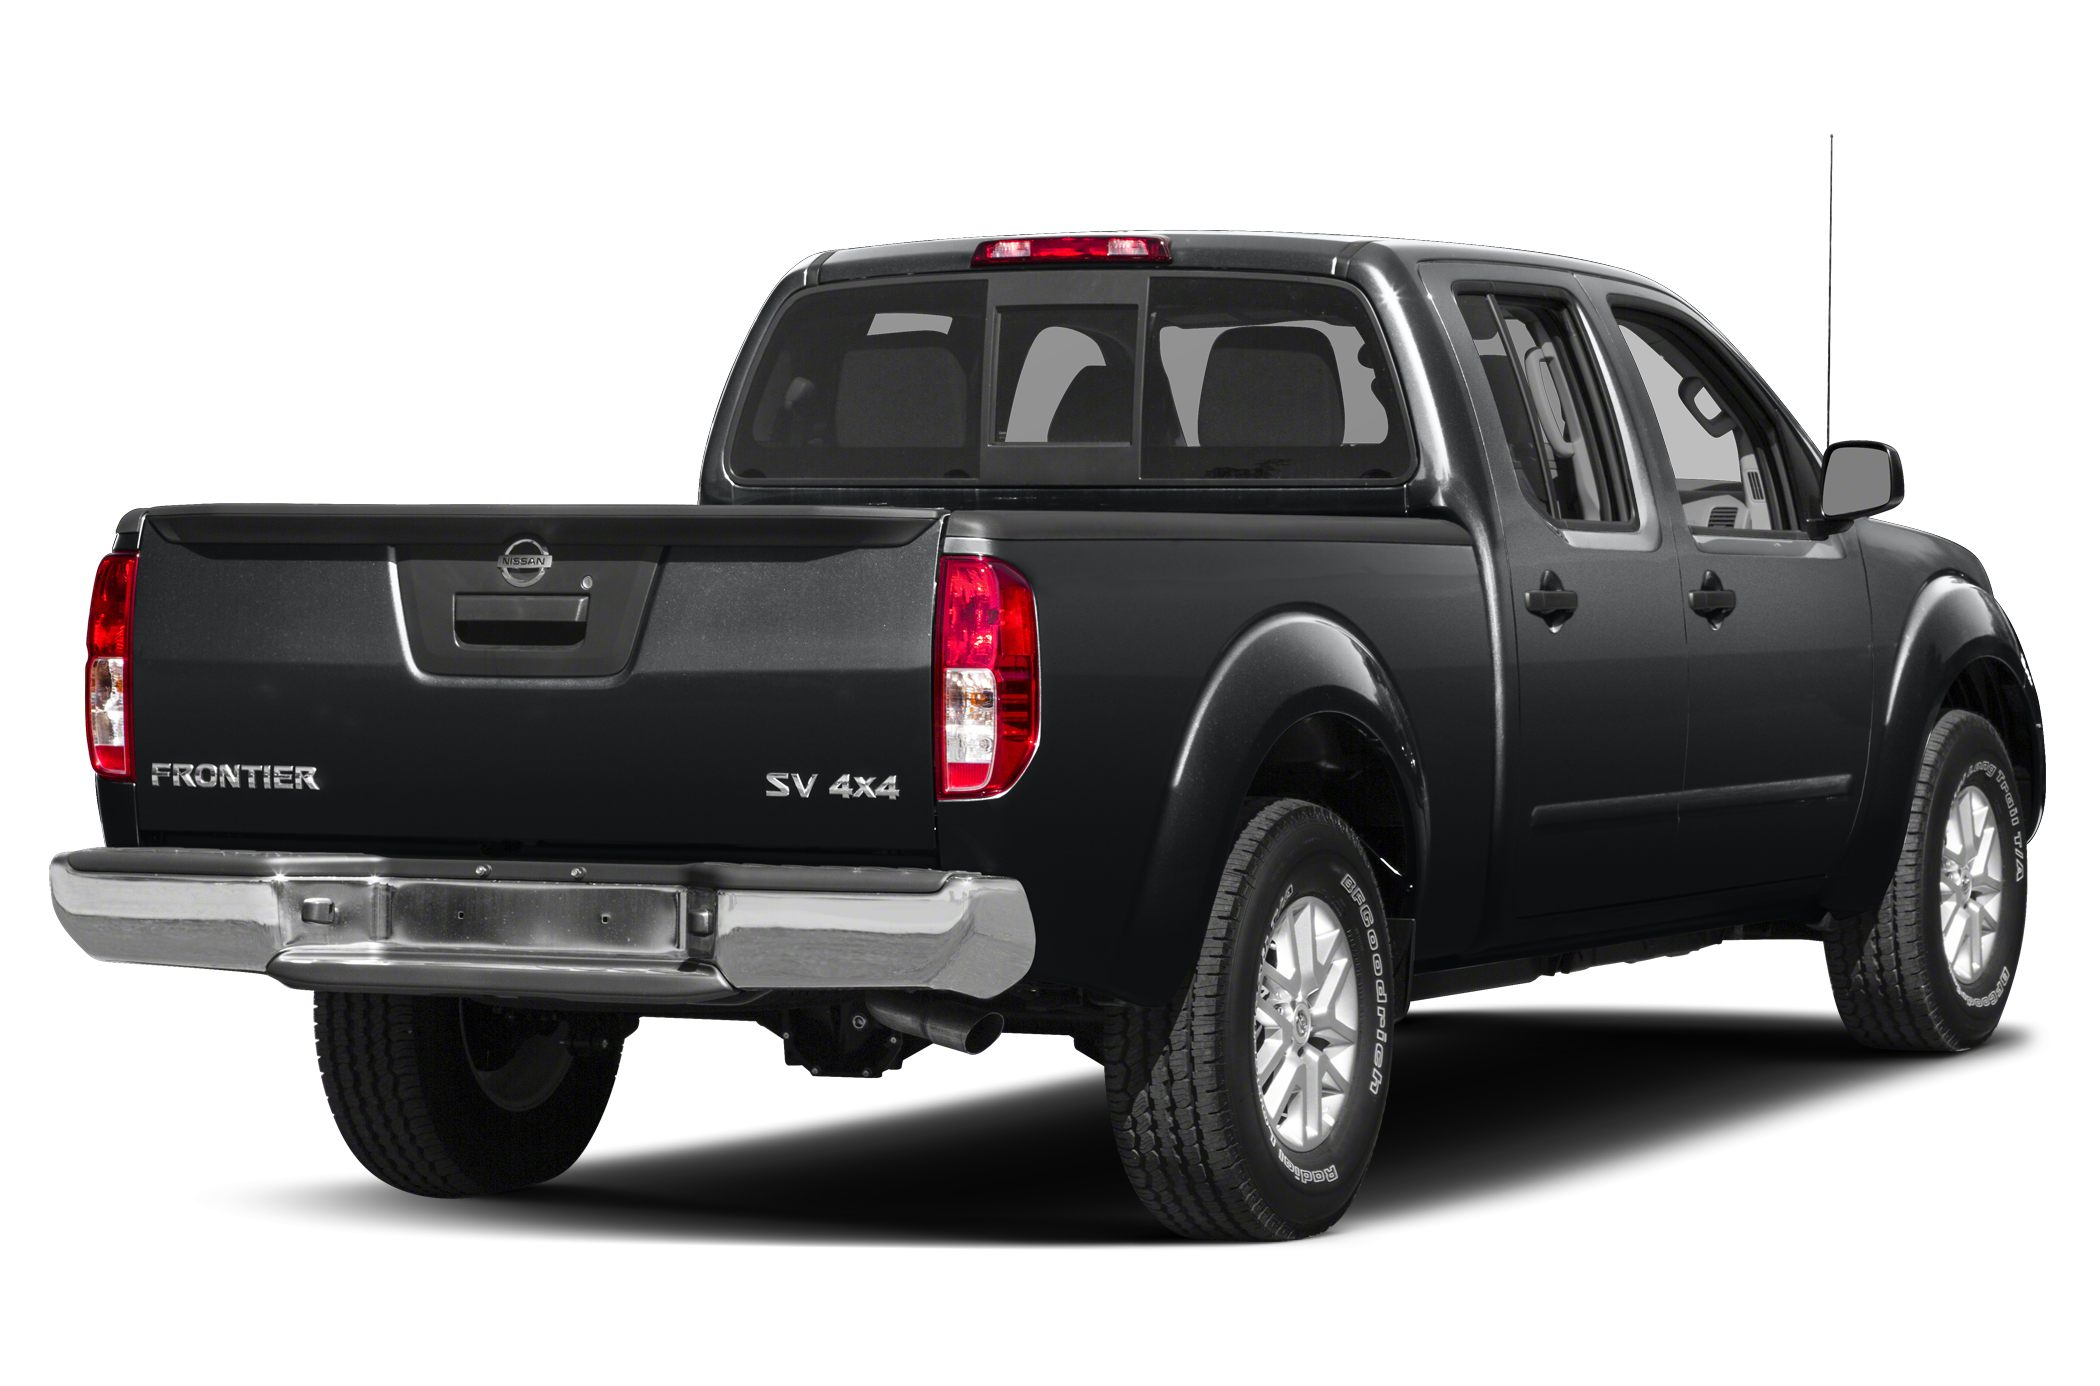 2014 nissan frontier sv cars and vehicles san bernardino ca. Black Bedroom Furniture Sets. Home Design Ideas